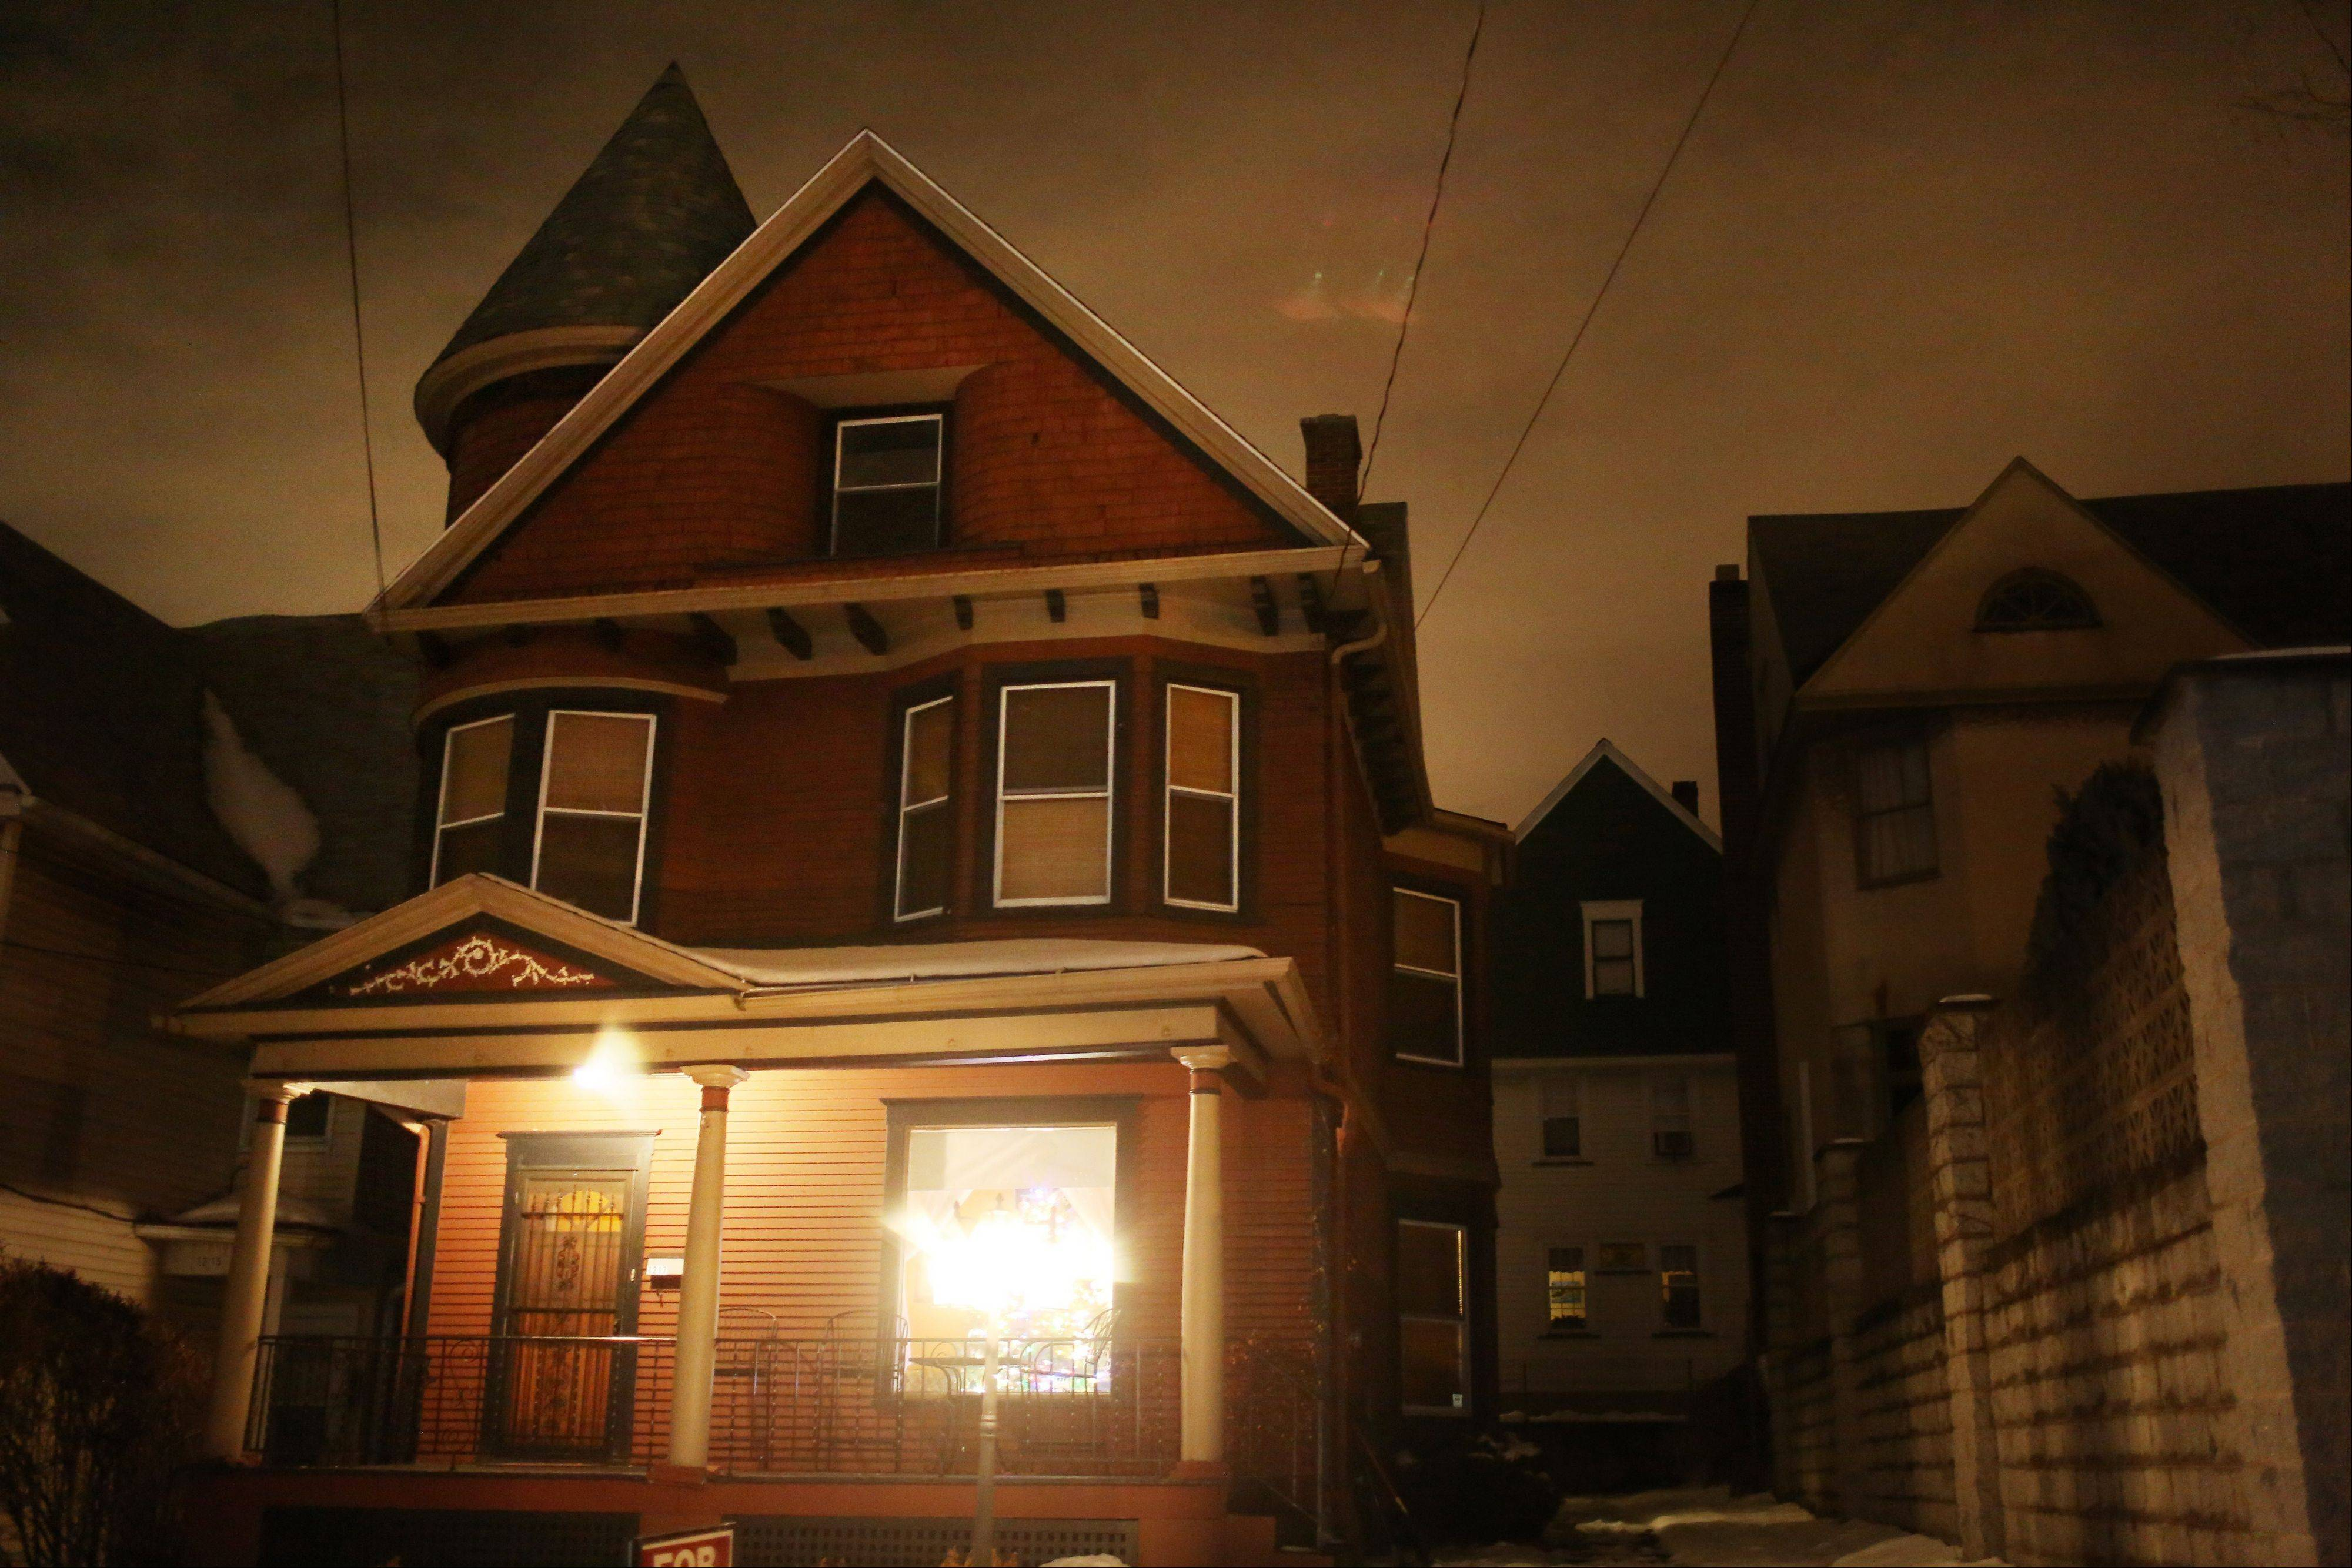 The 1901 Victorian home at 1217 Marion St. in Dunmore, Pa.